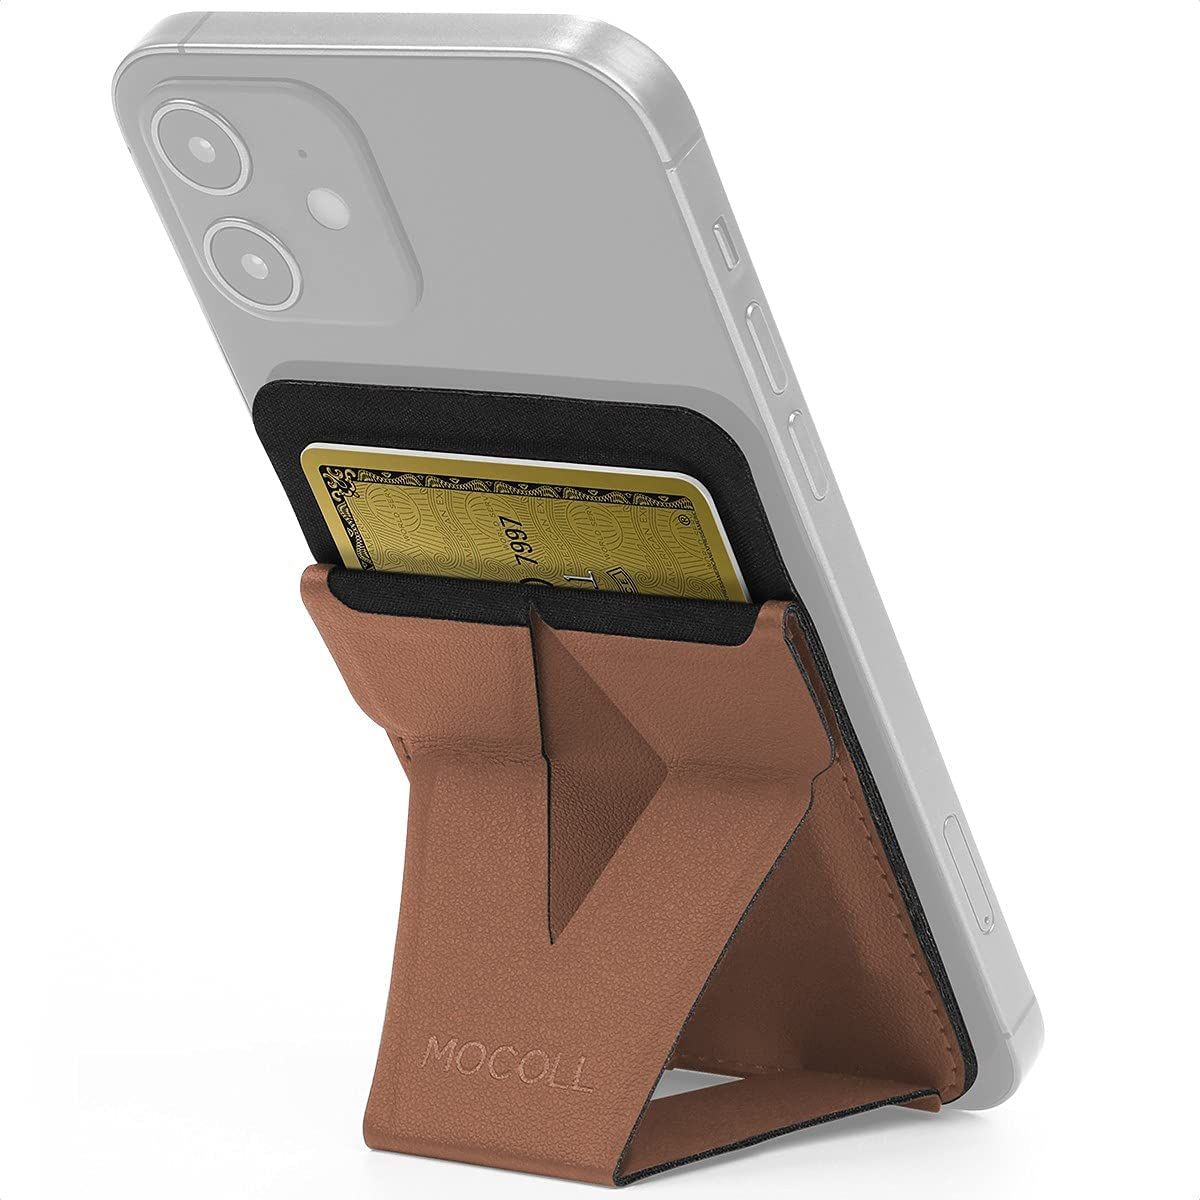 MOCOLL Magsafe Wallet Stand Magnetic Phone Card Holder Grip Compatible for iPhone 12 12 Mini 12 Pro 12 Pro Max (Desert Brown)